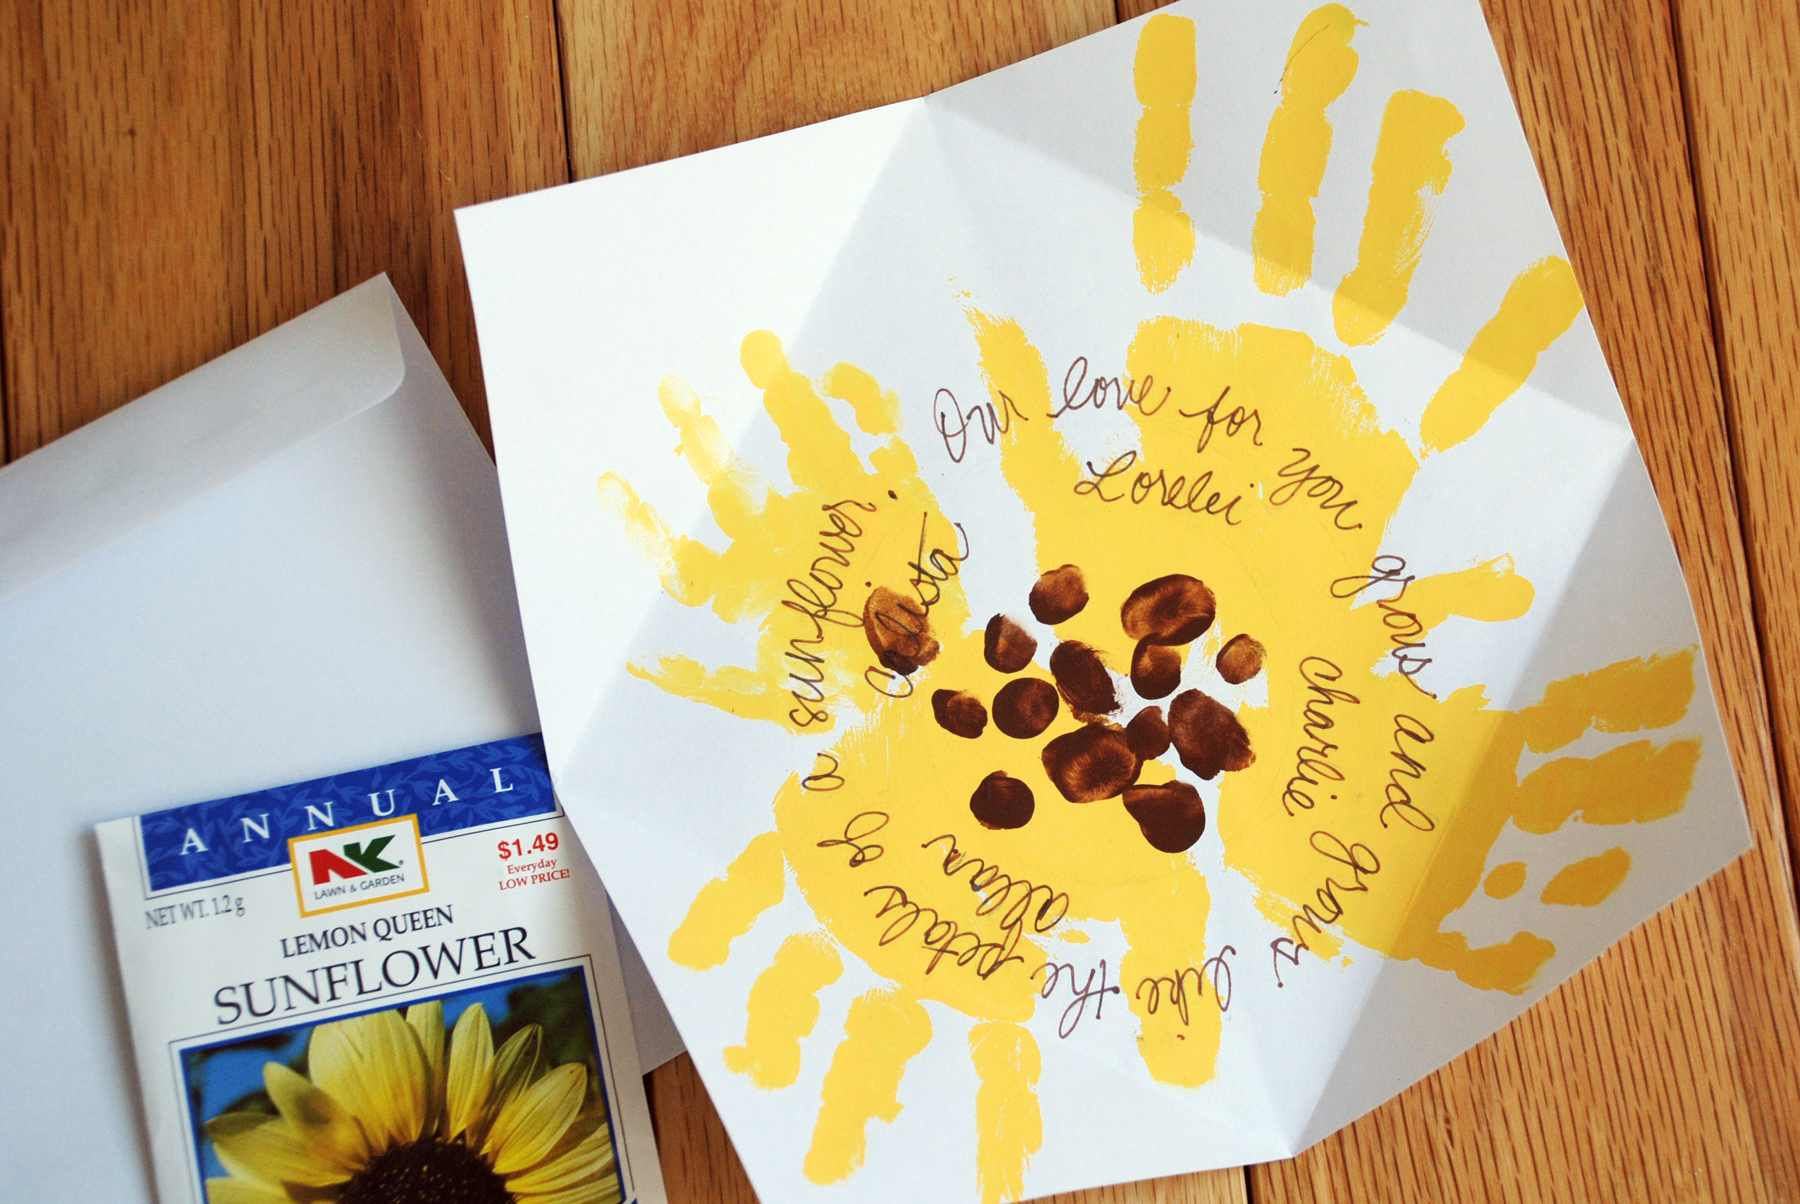 How To Mother's Day Sunflower Handprint Card